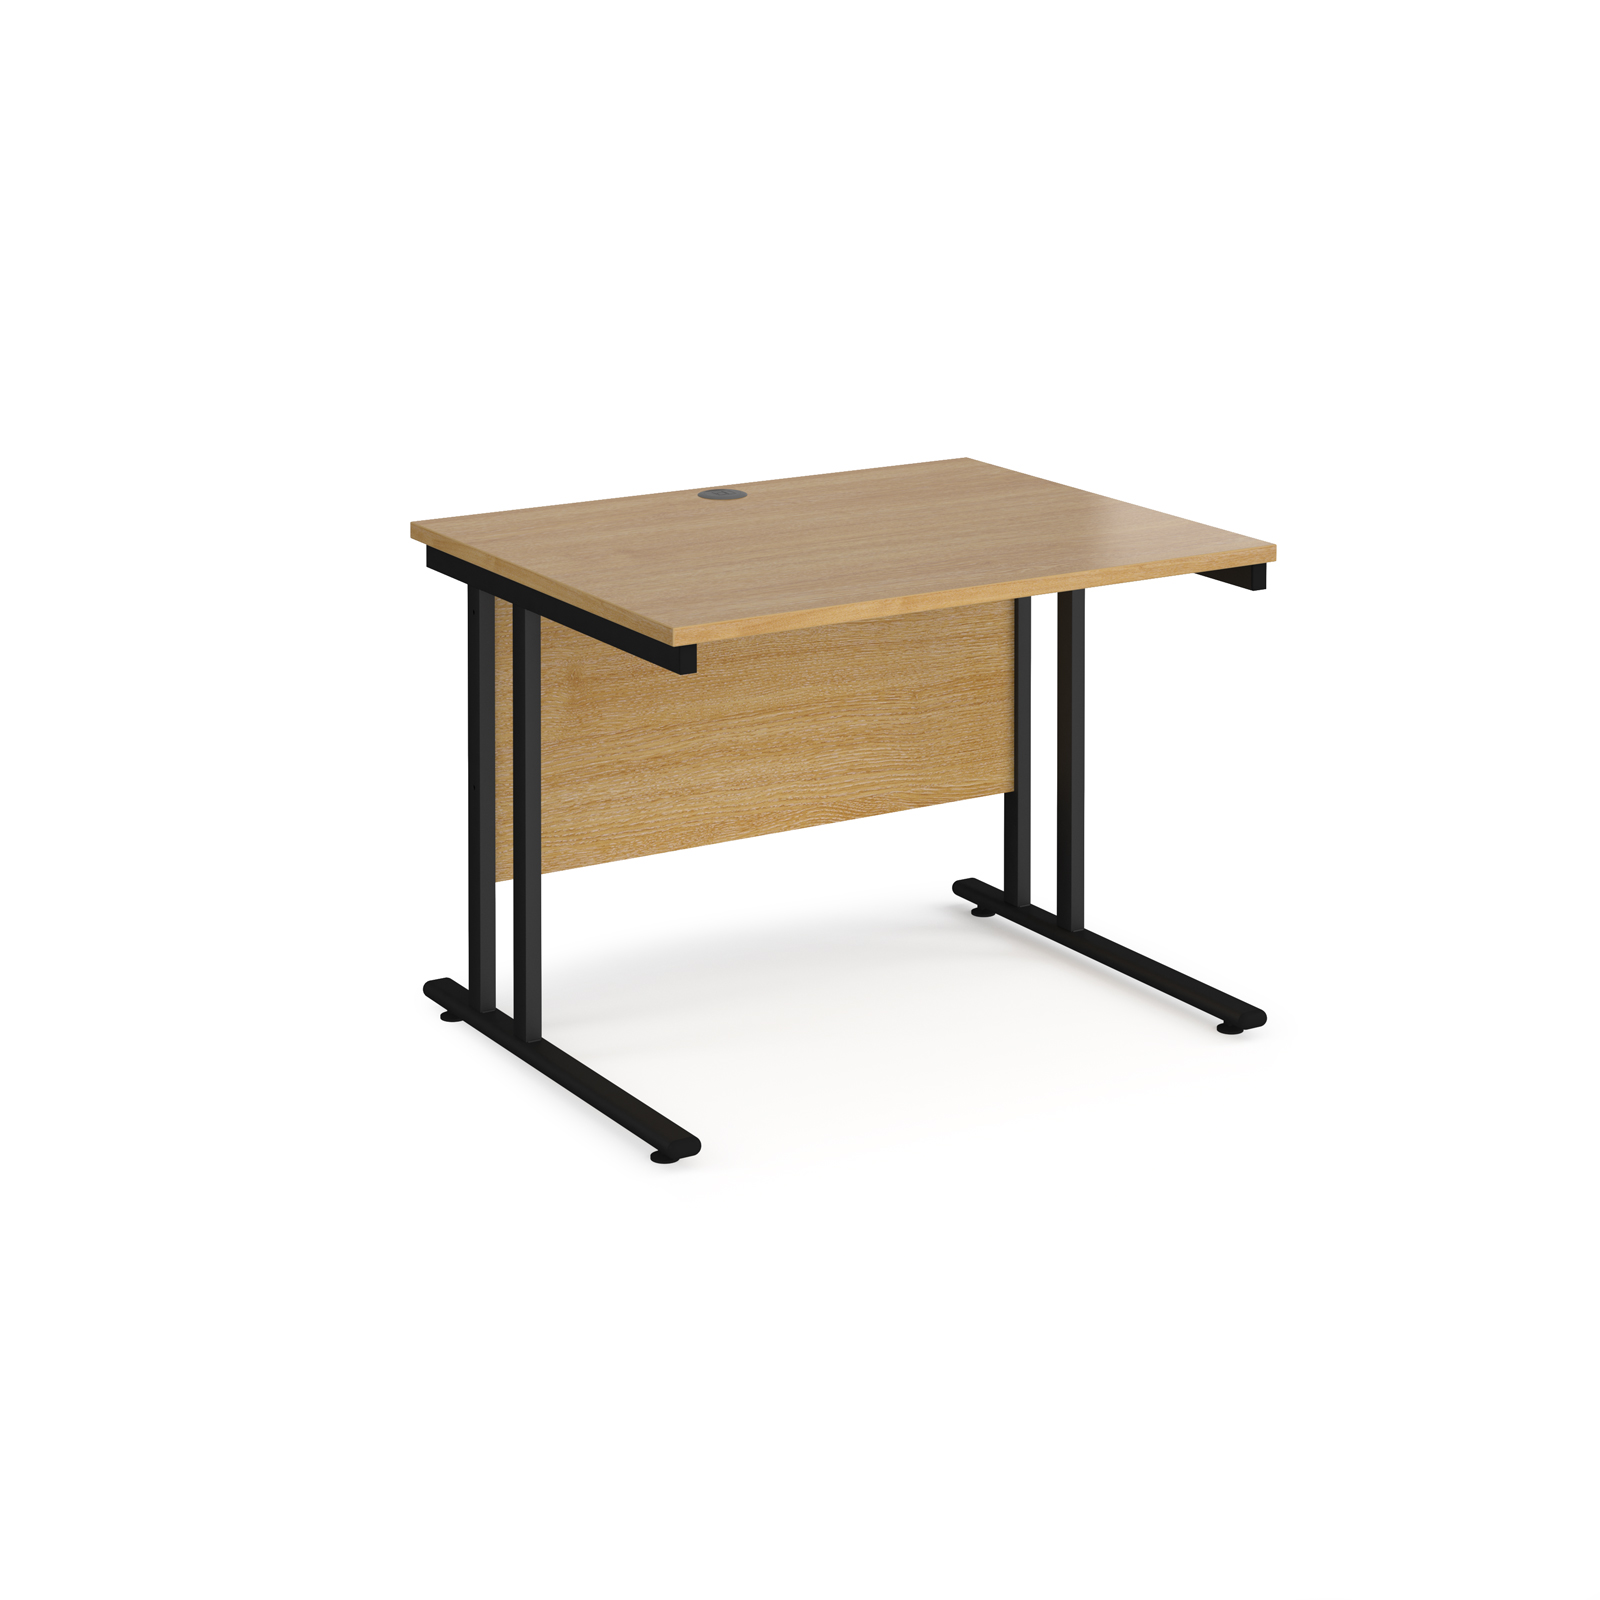 Rectangular Desks Maestro 25 straight desk 1000mm x 800mm - black cantilever leg frame, oak top